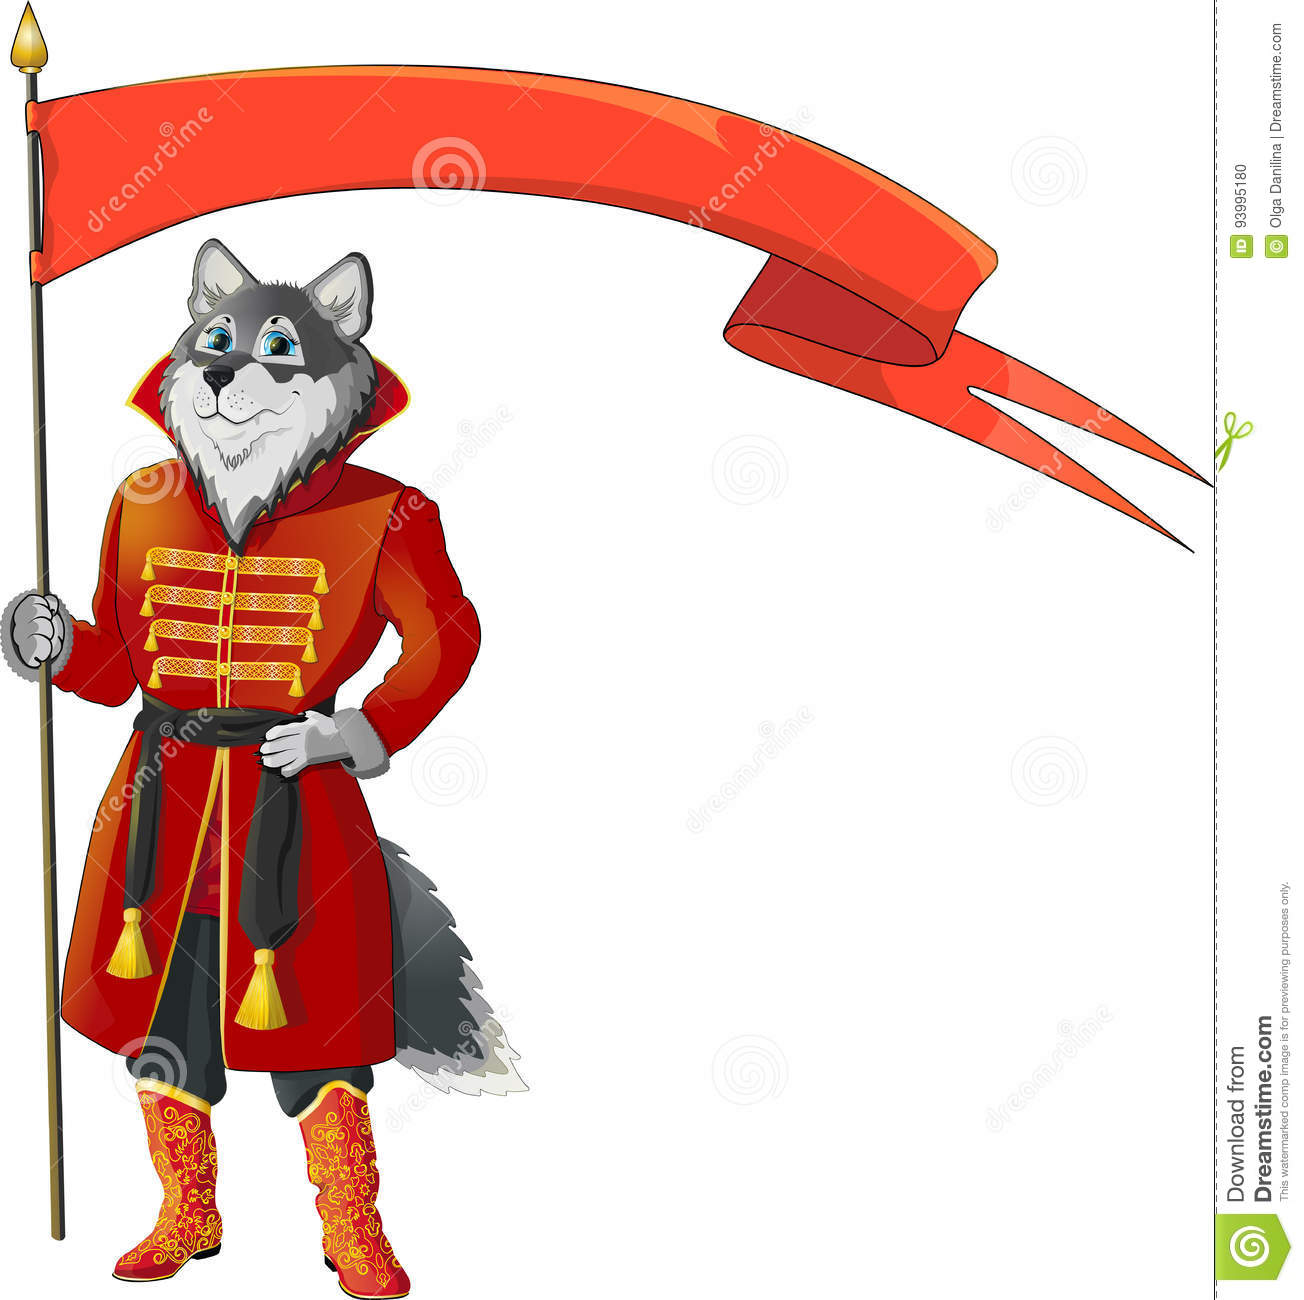 Wolf with flag stock vector. Illustration of cheerful - 93995180